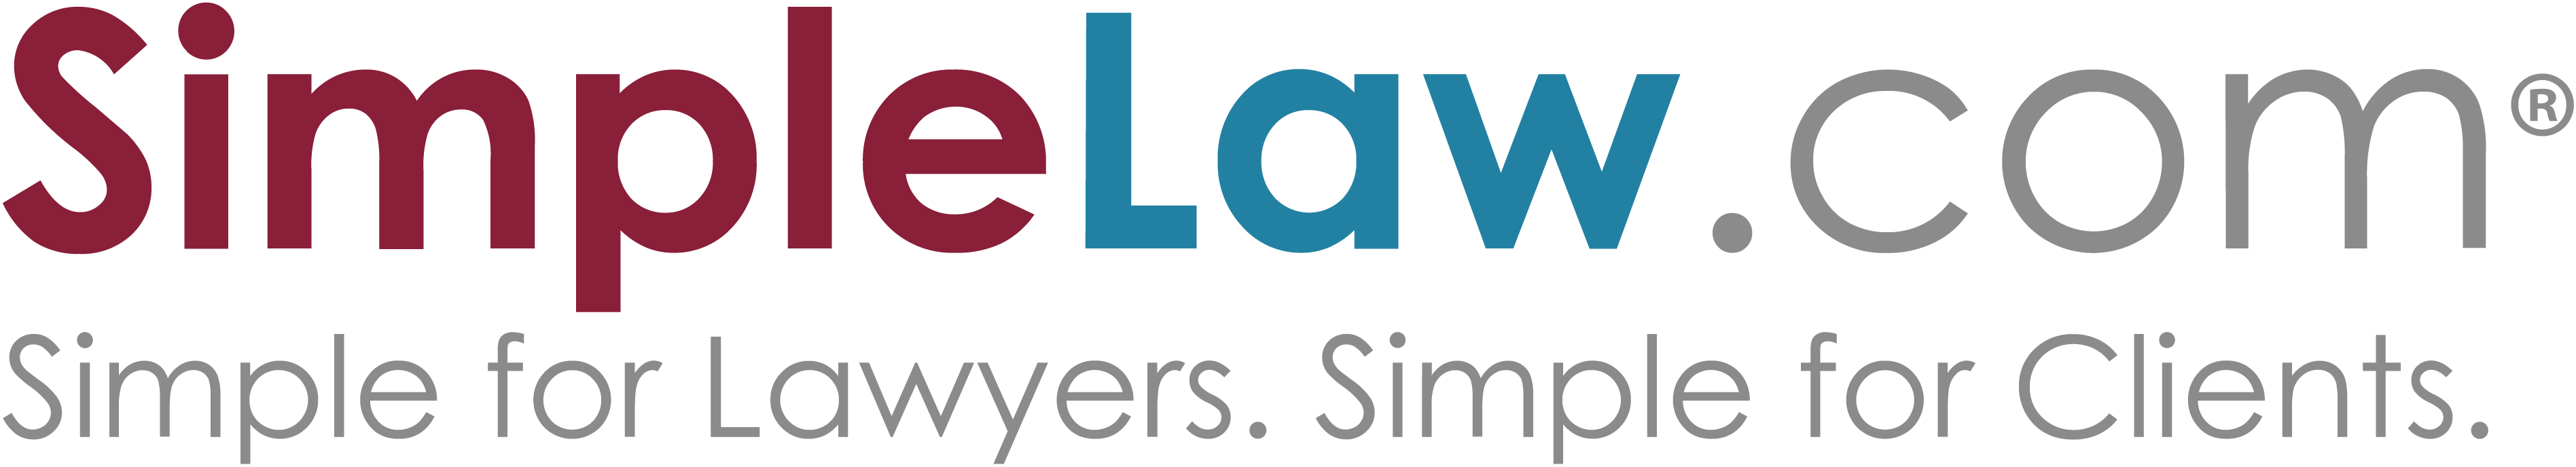 SimpleLaw-logo-color-tagline_full